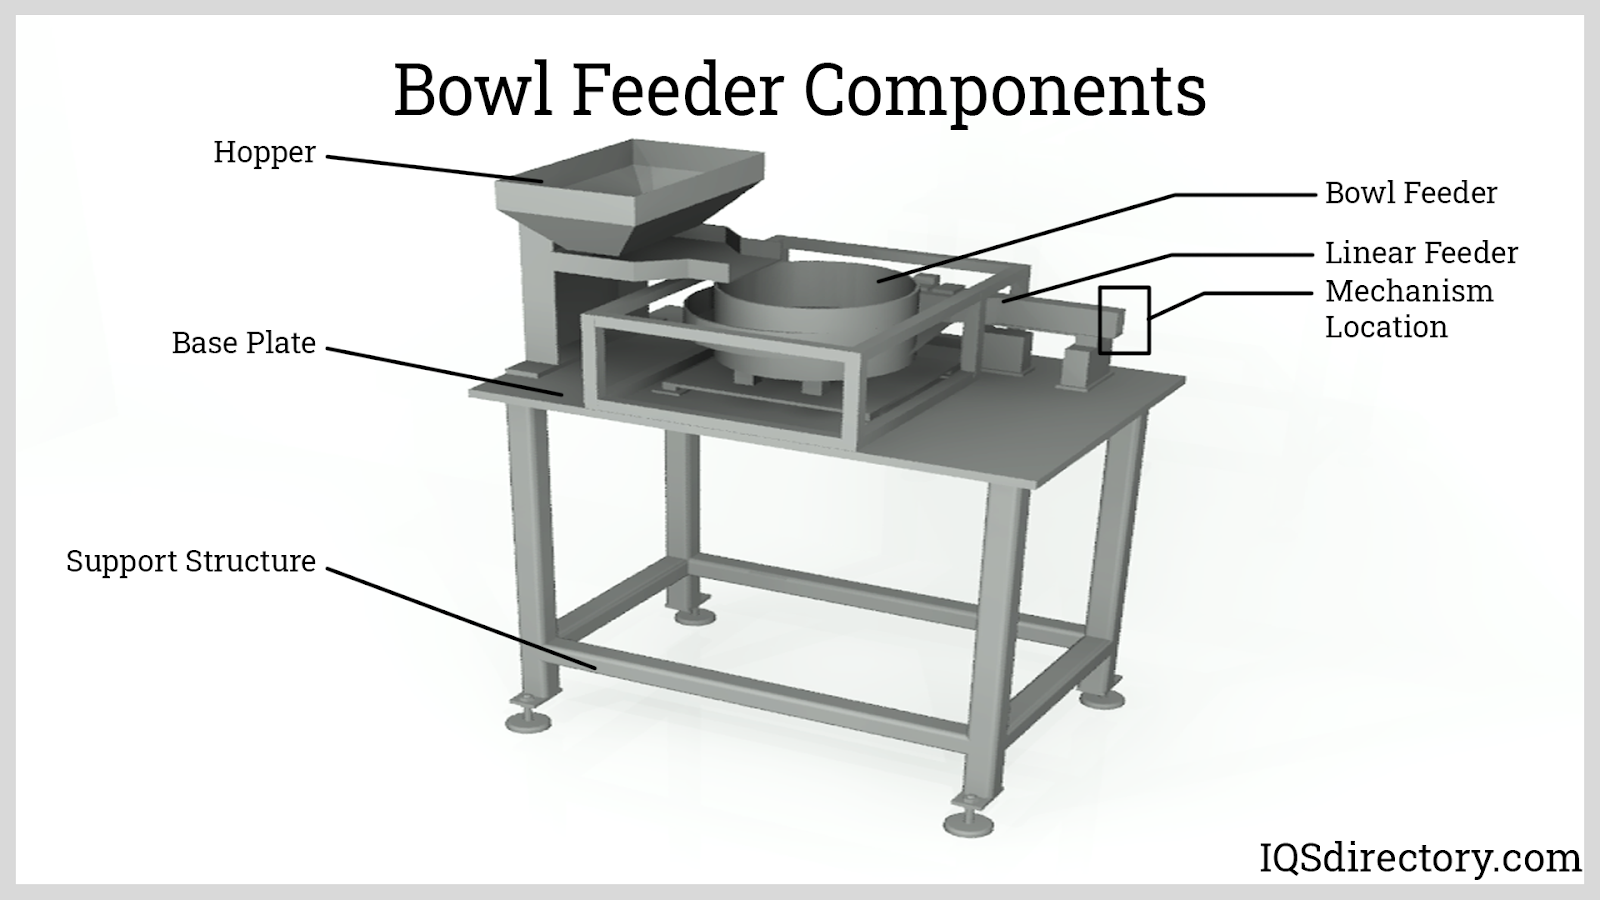 Bowl Feeder Components